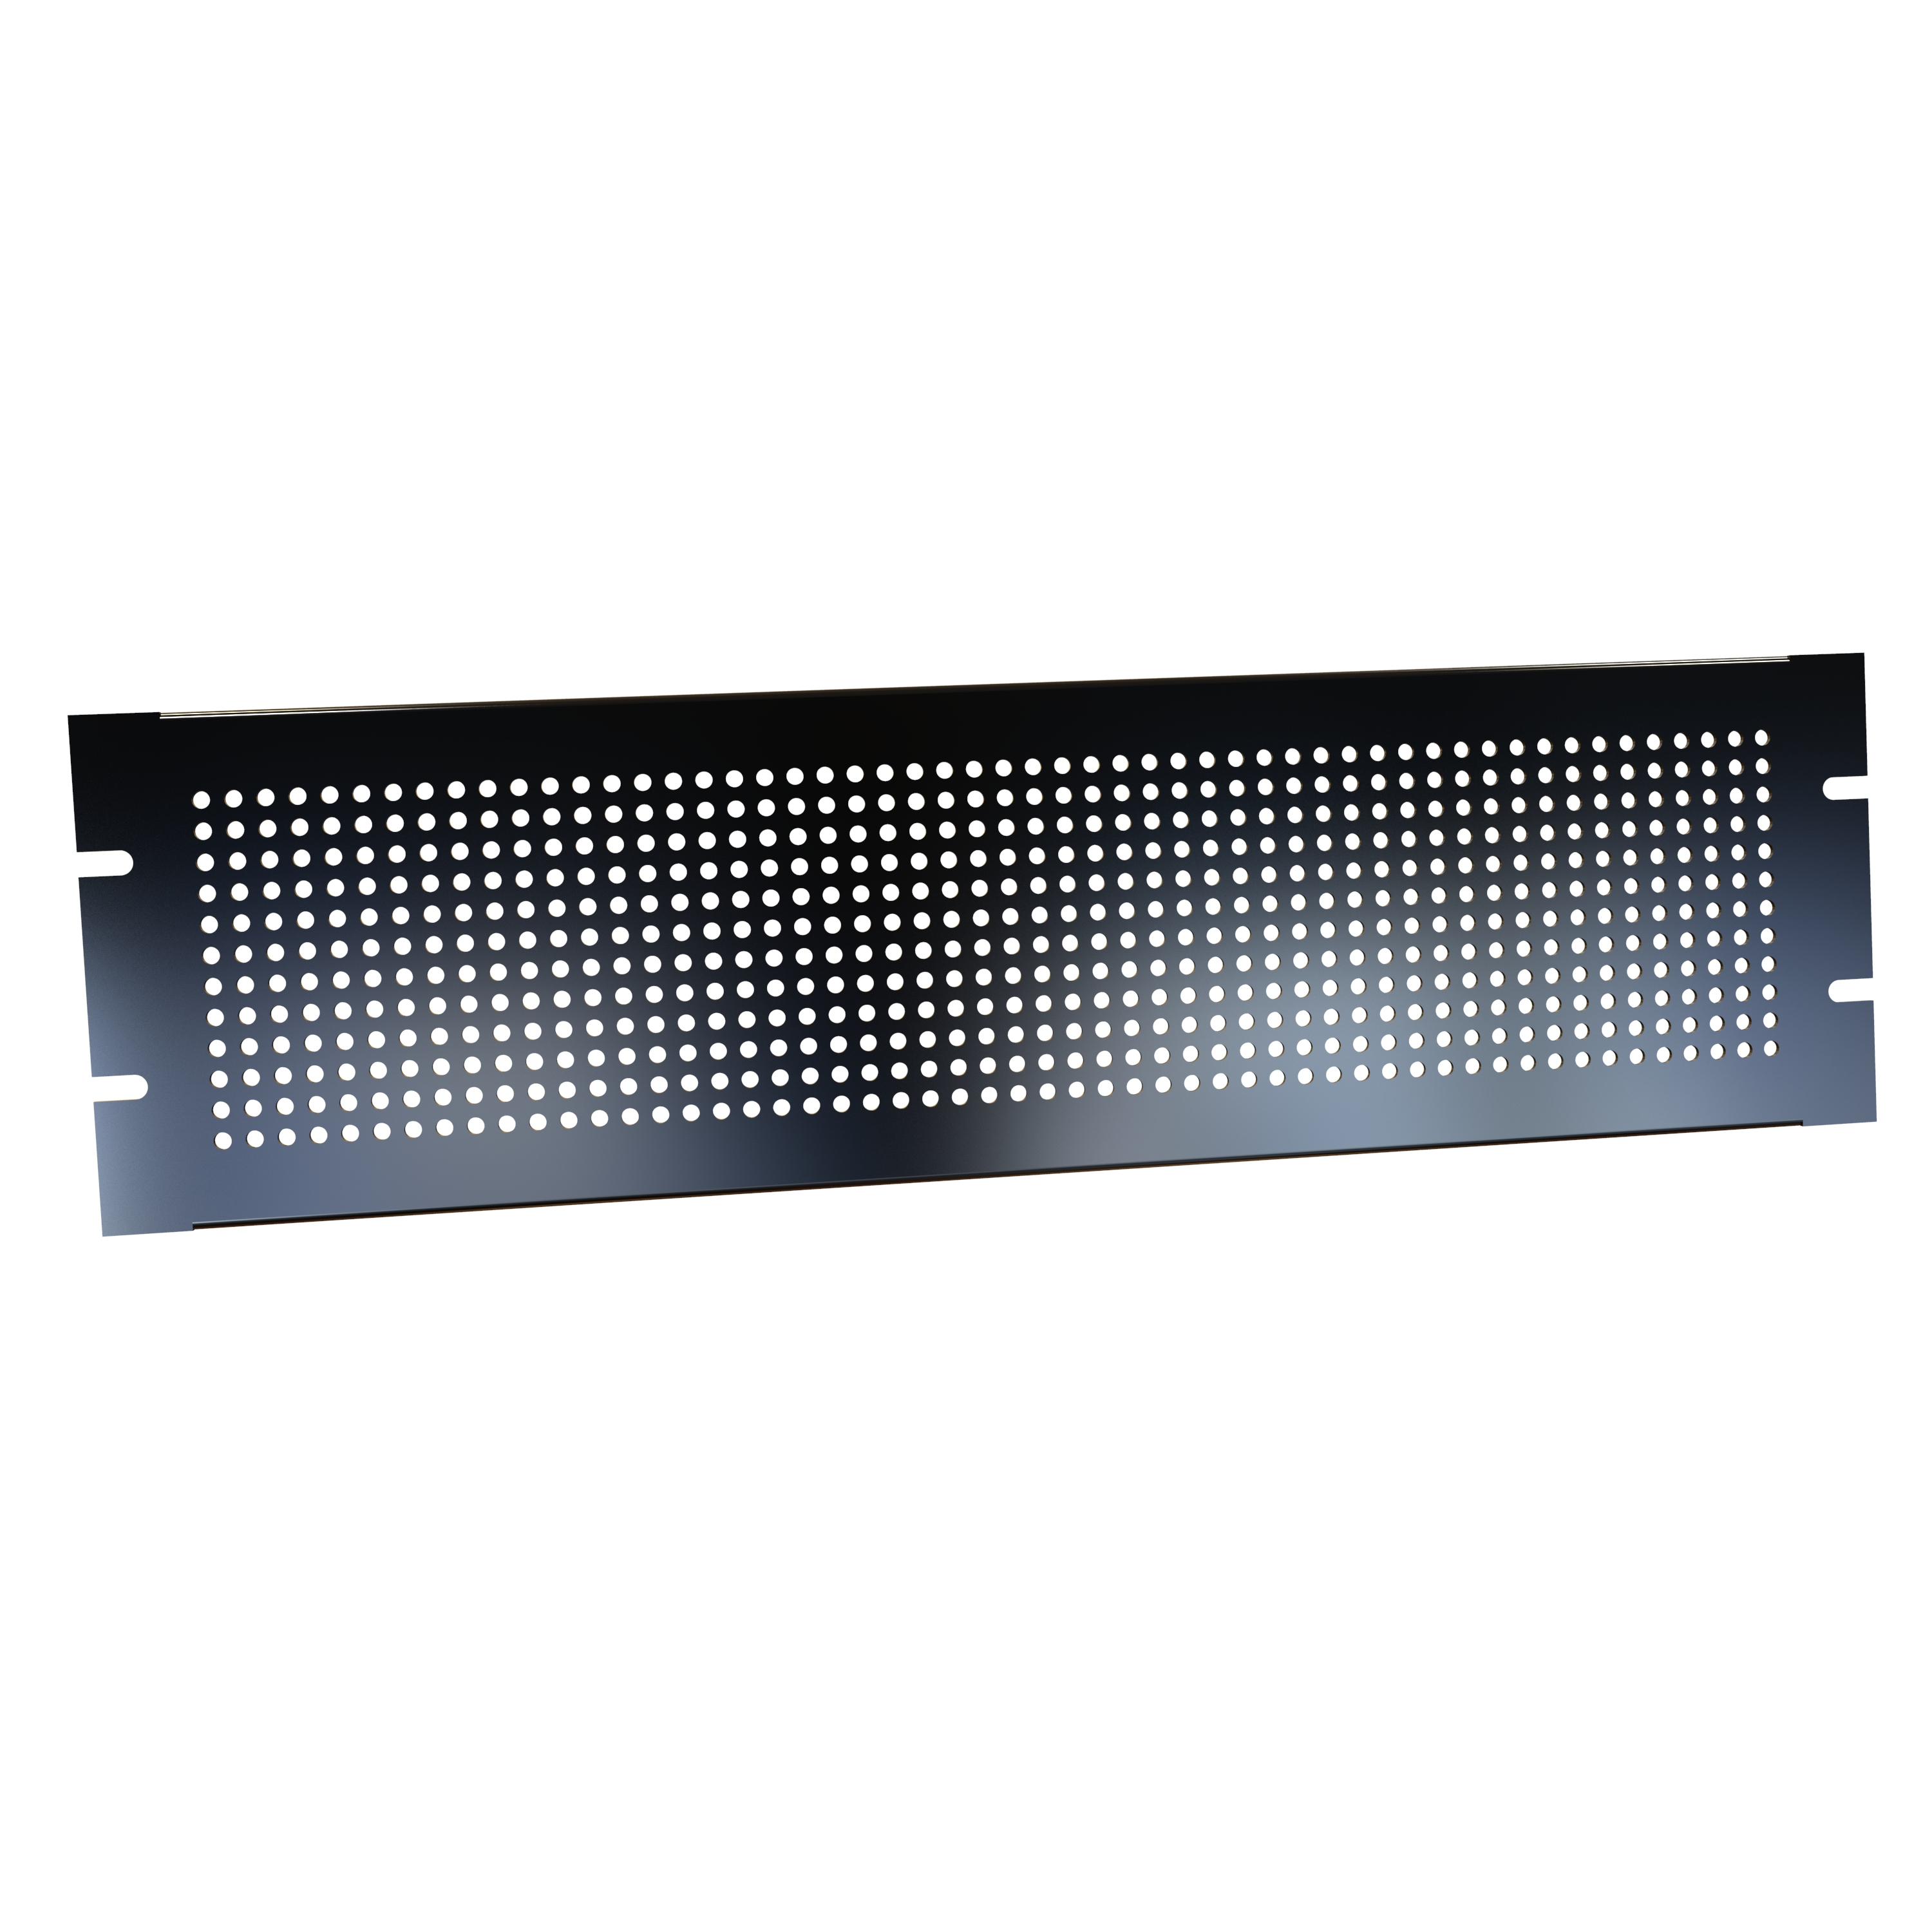 PPFS19007LG2 - PPFS Series Perforated Steel Rack Panel